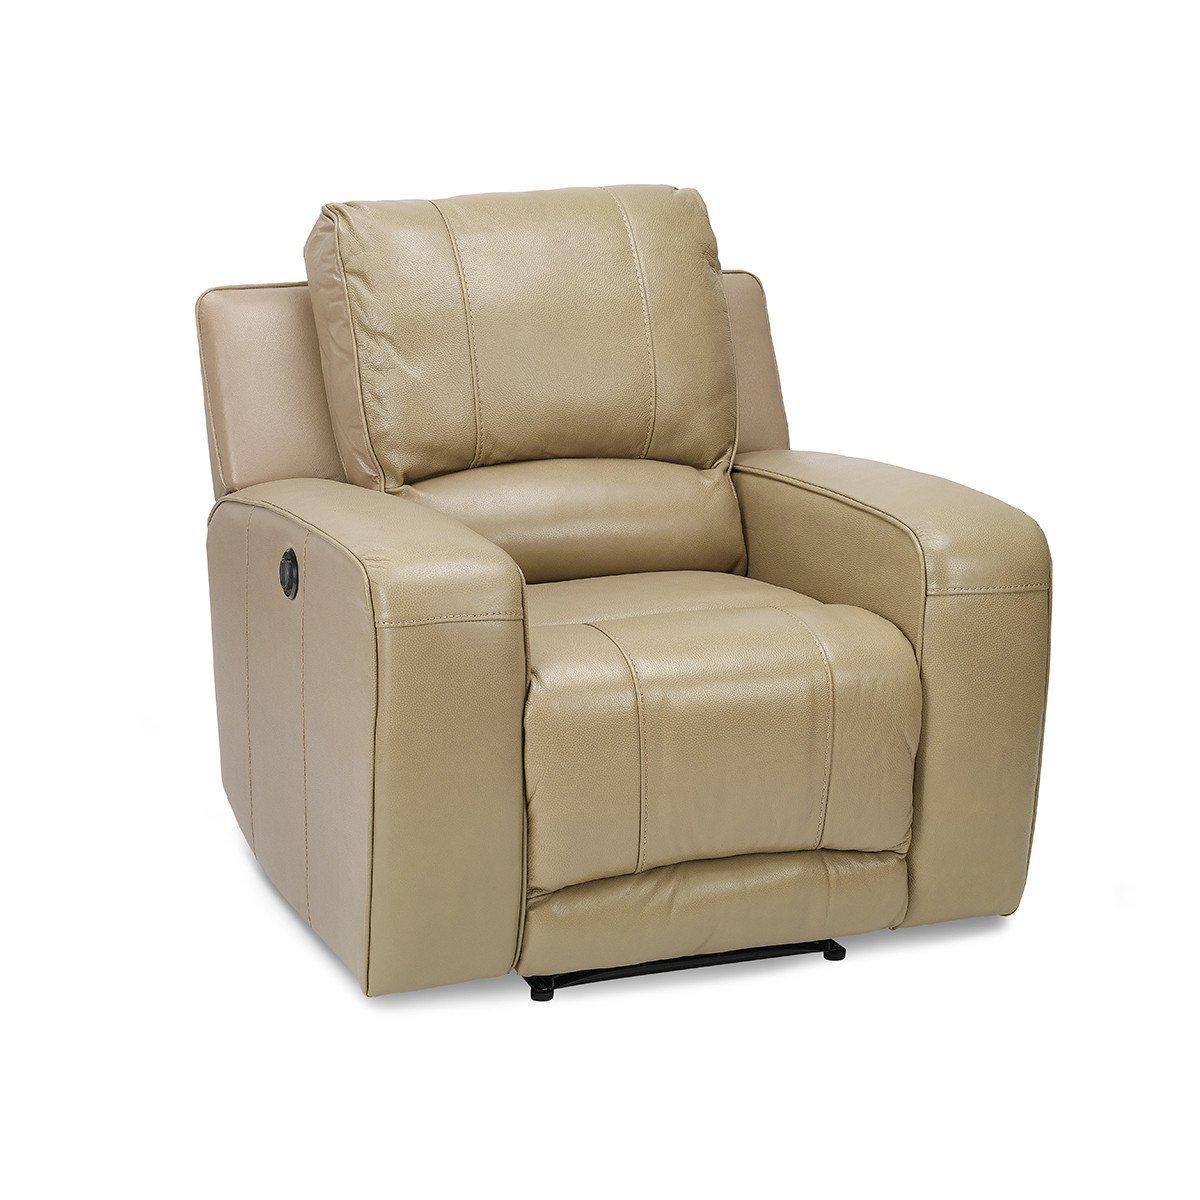 Terrence Power Recliner Chair-Jennifer Furniture